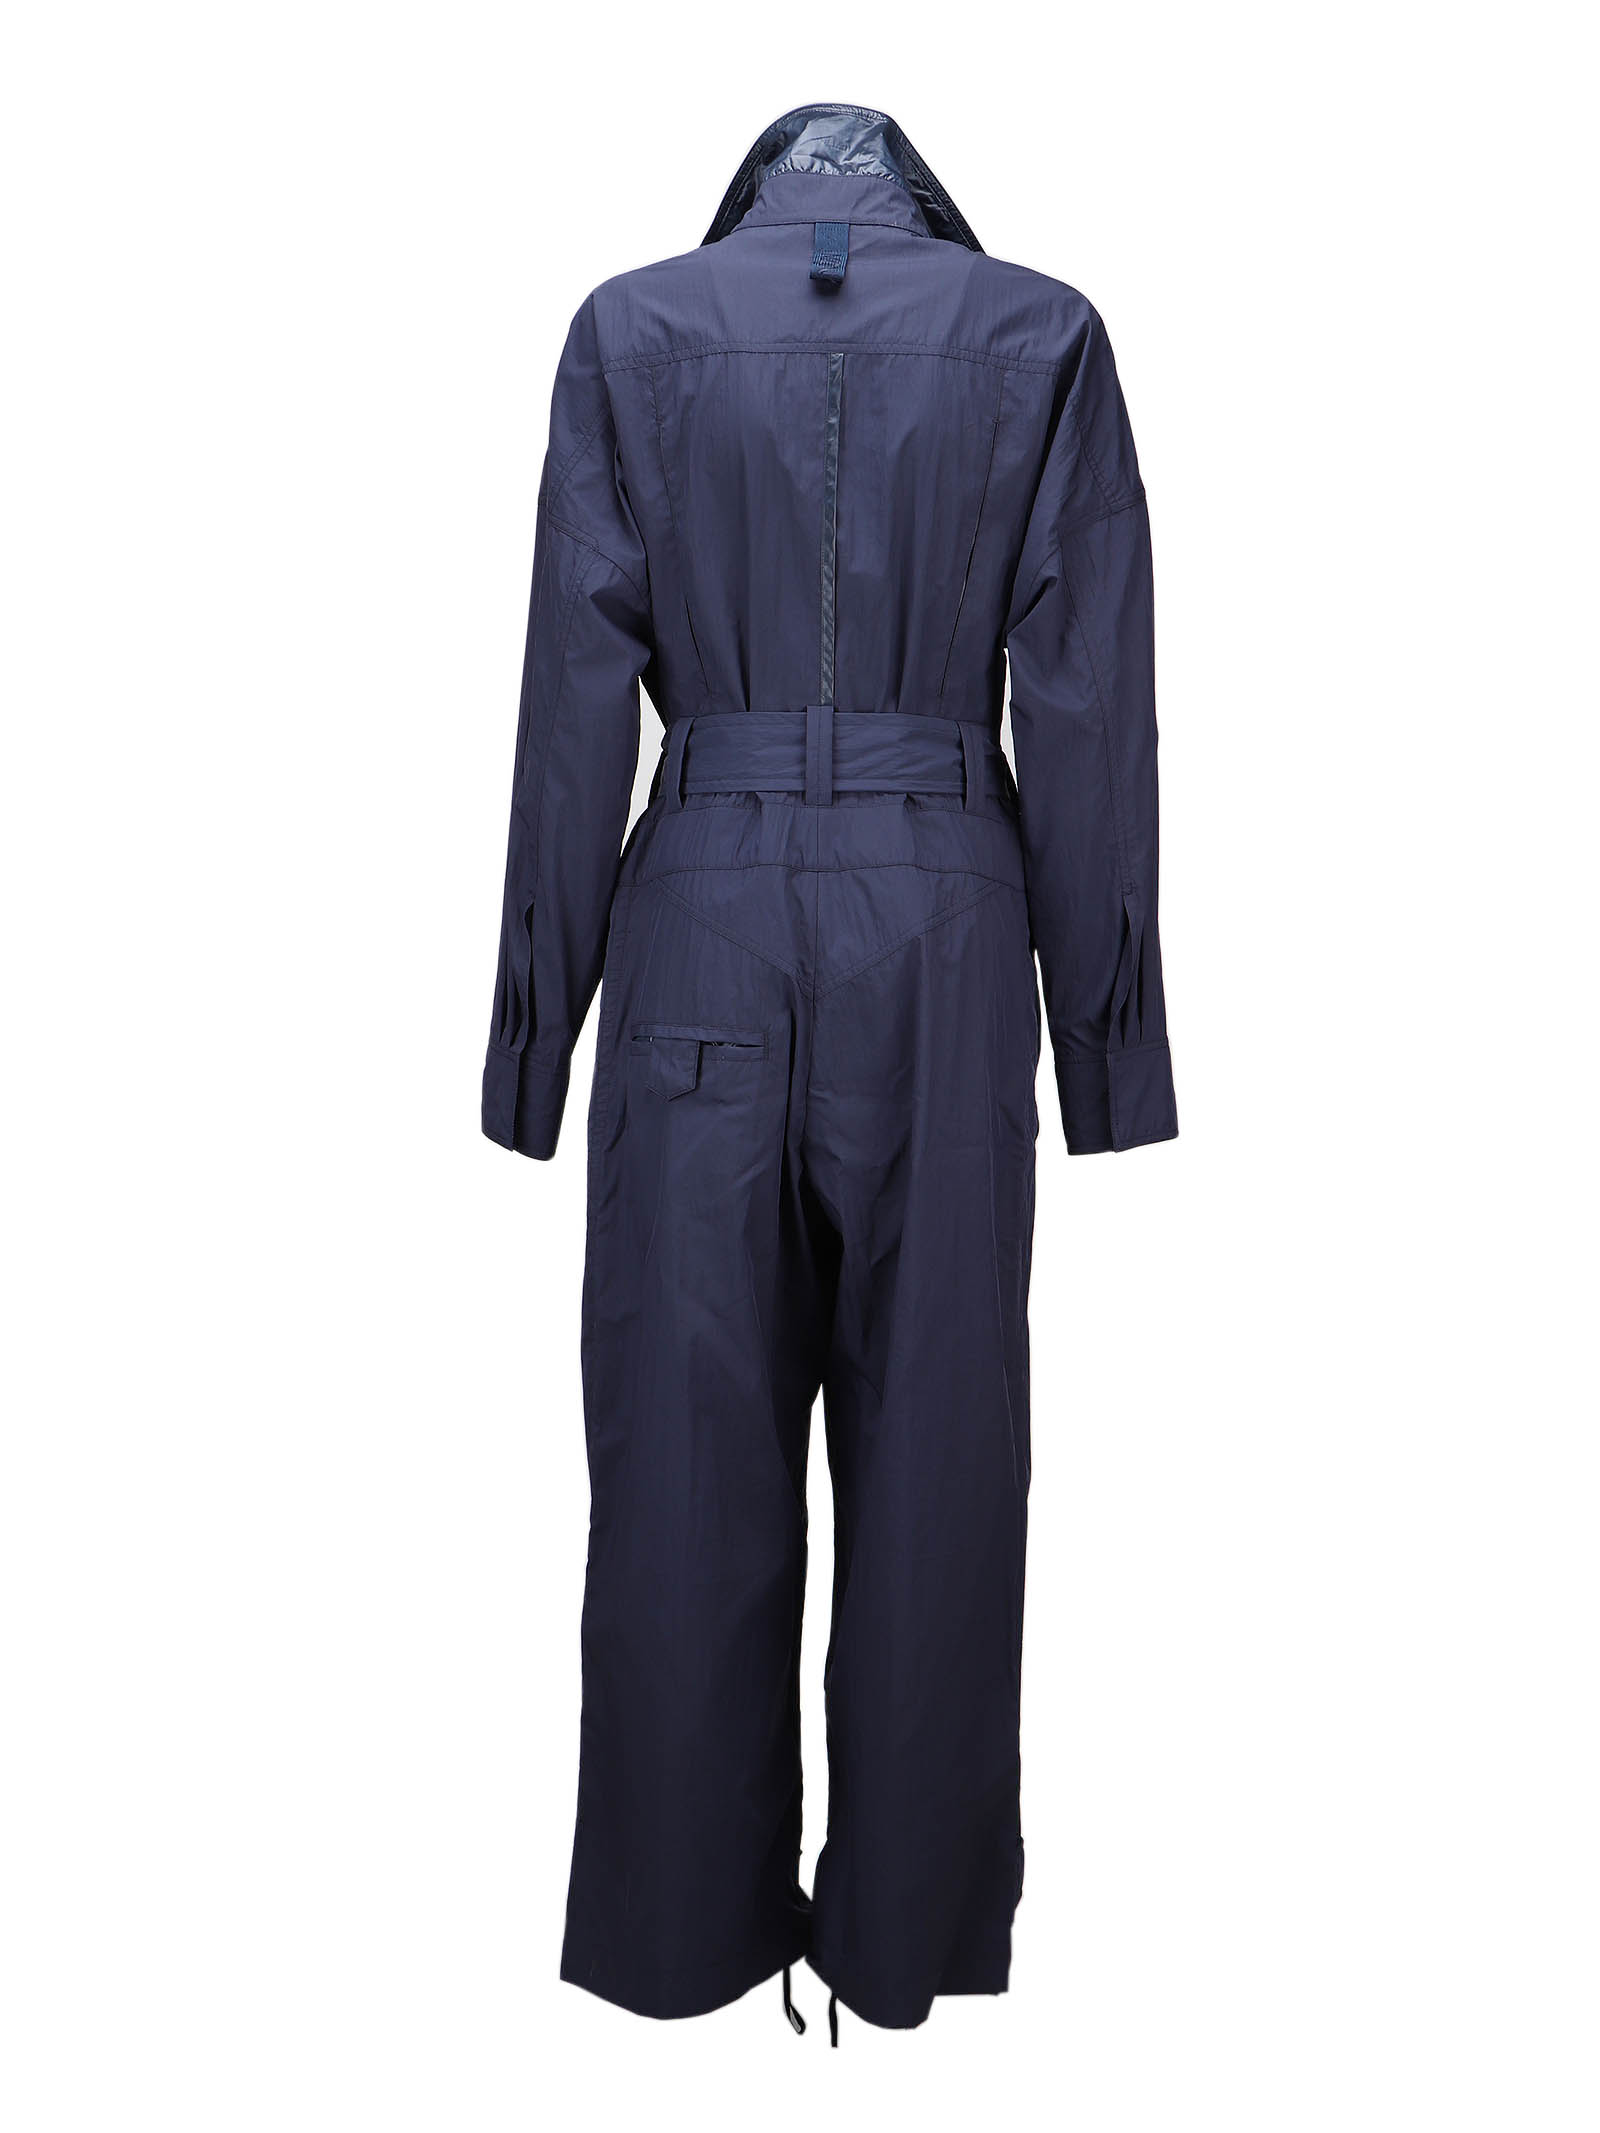 Picture of Moncler Genius | Moncler 1952 Jumpsuit